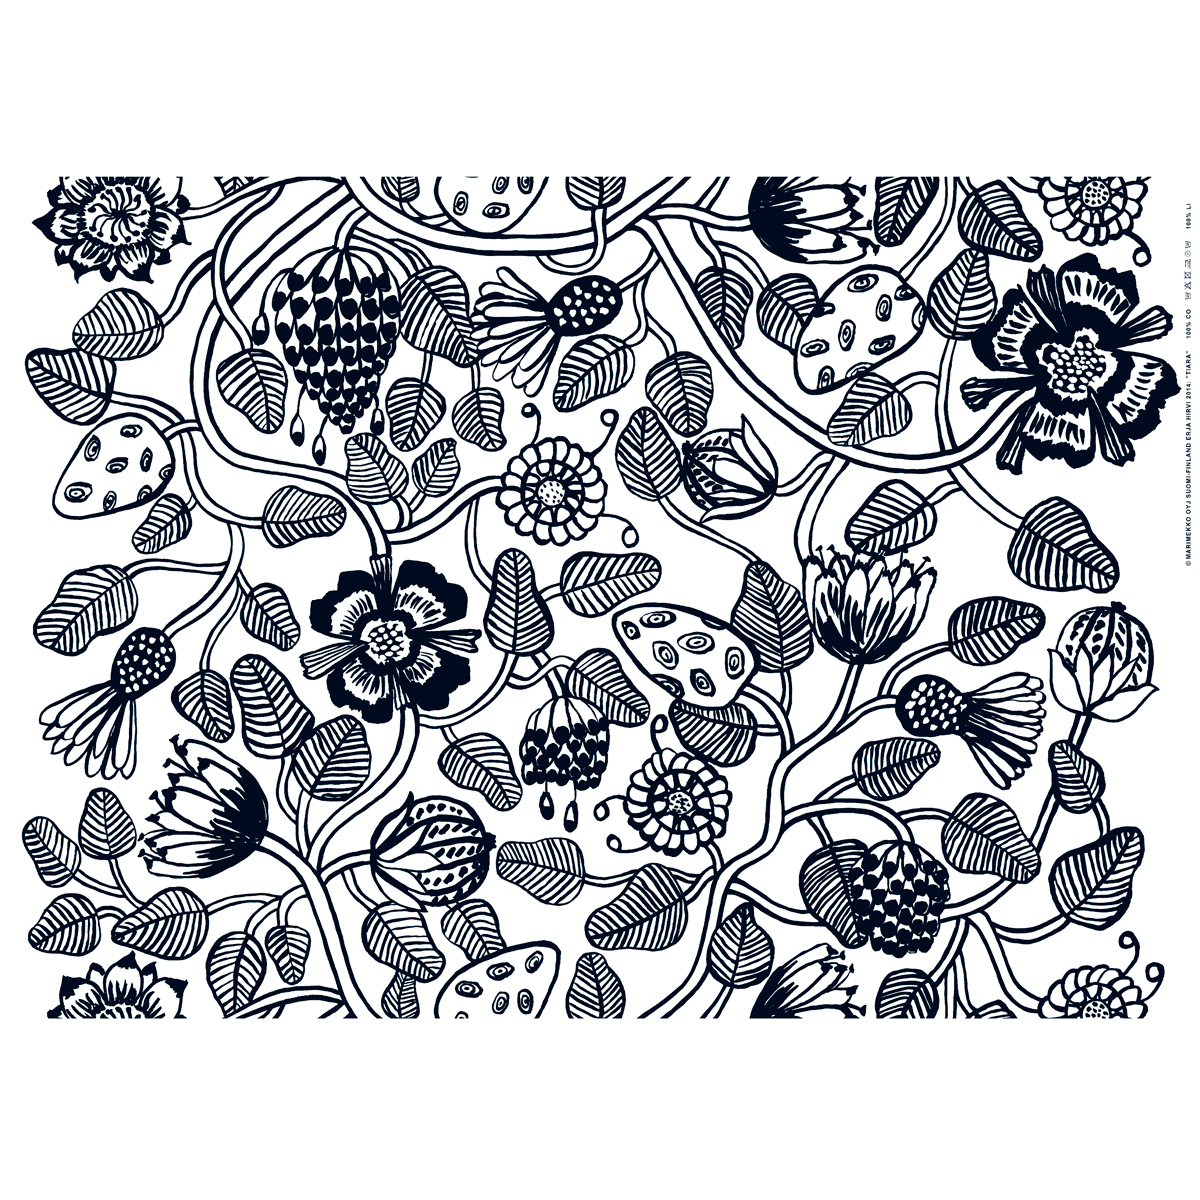 Gentil Marimekko Tiara White / Black Cotton Fabric